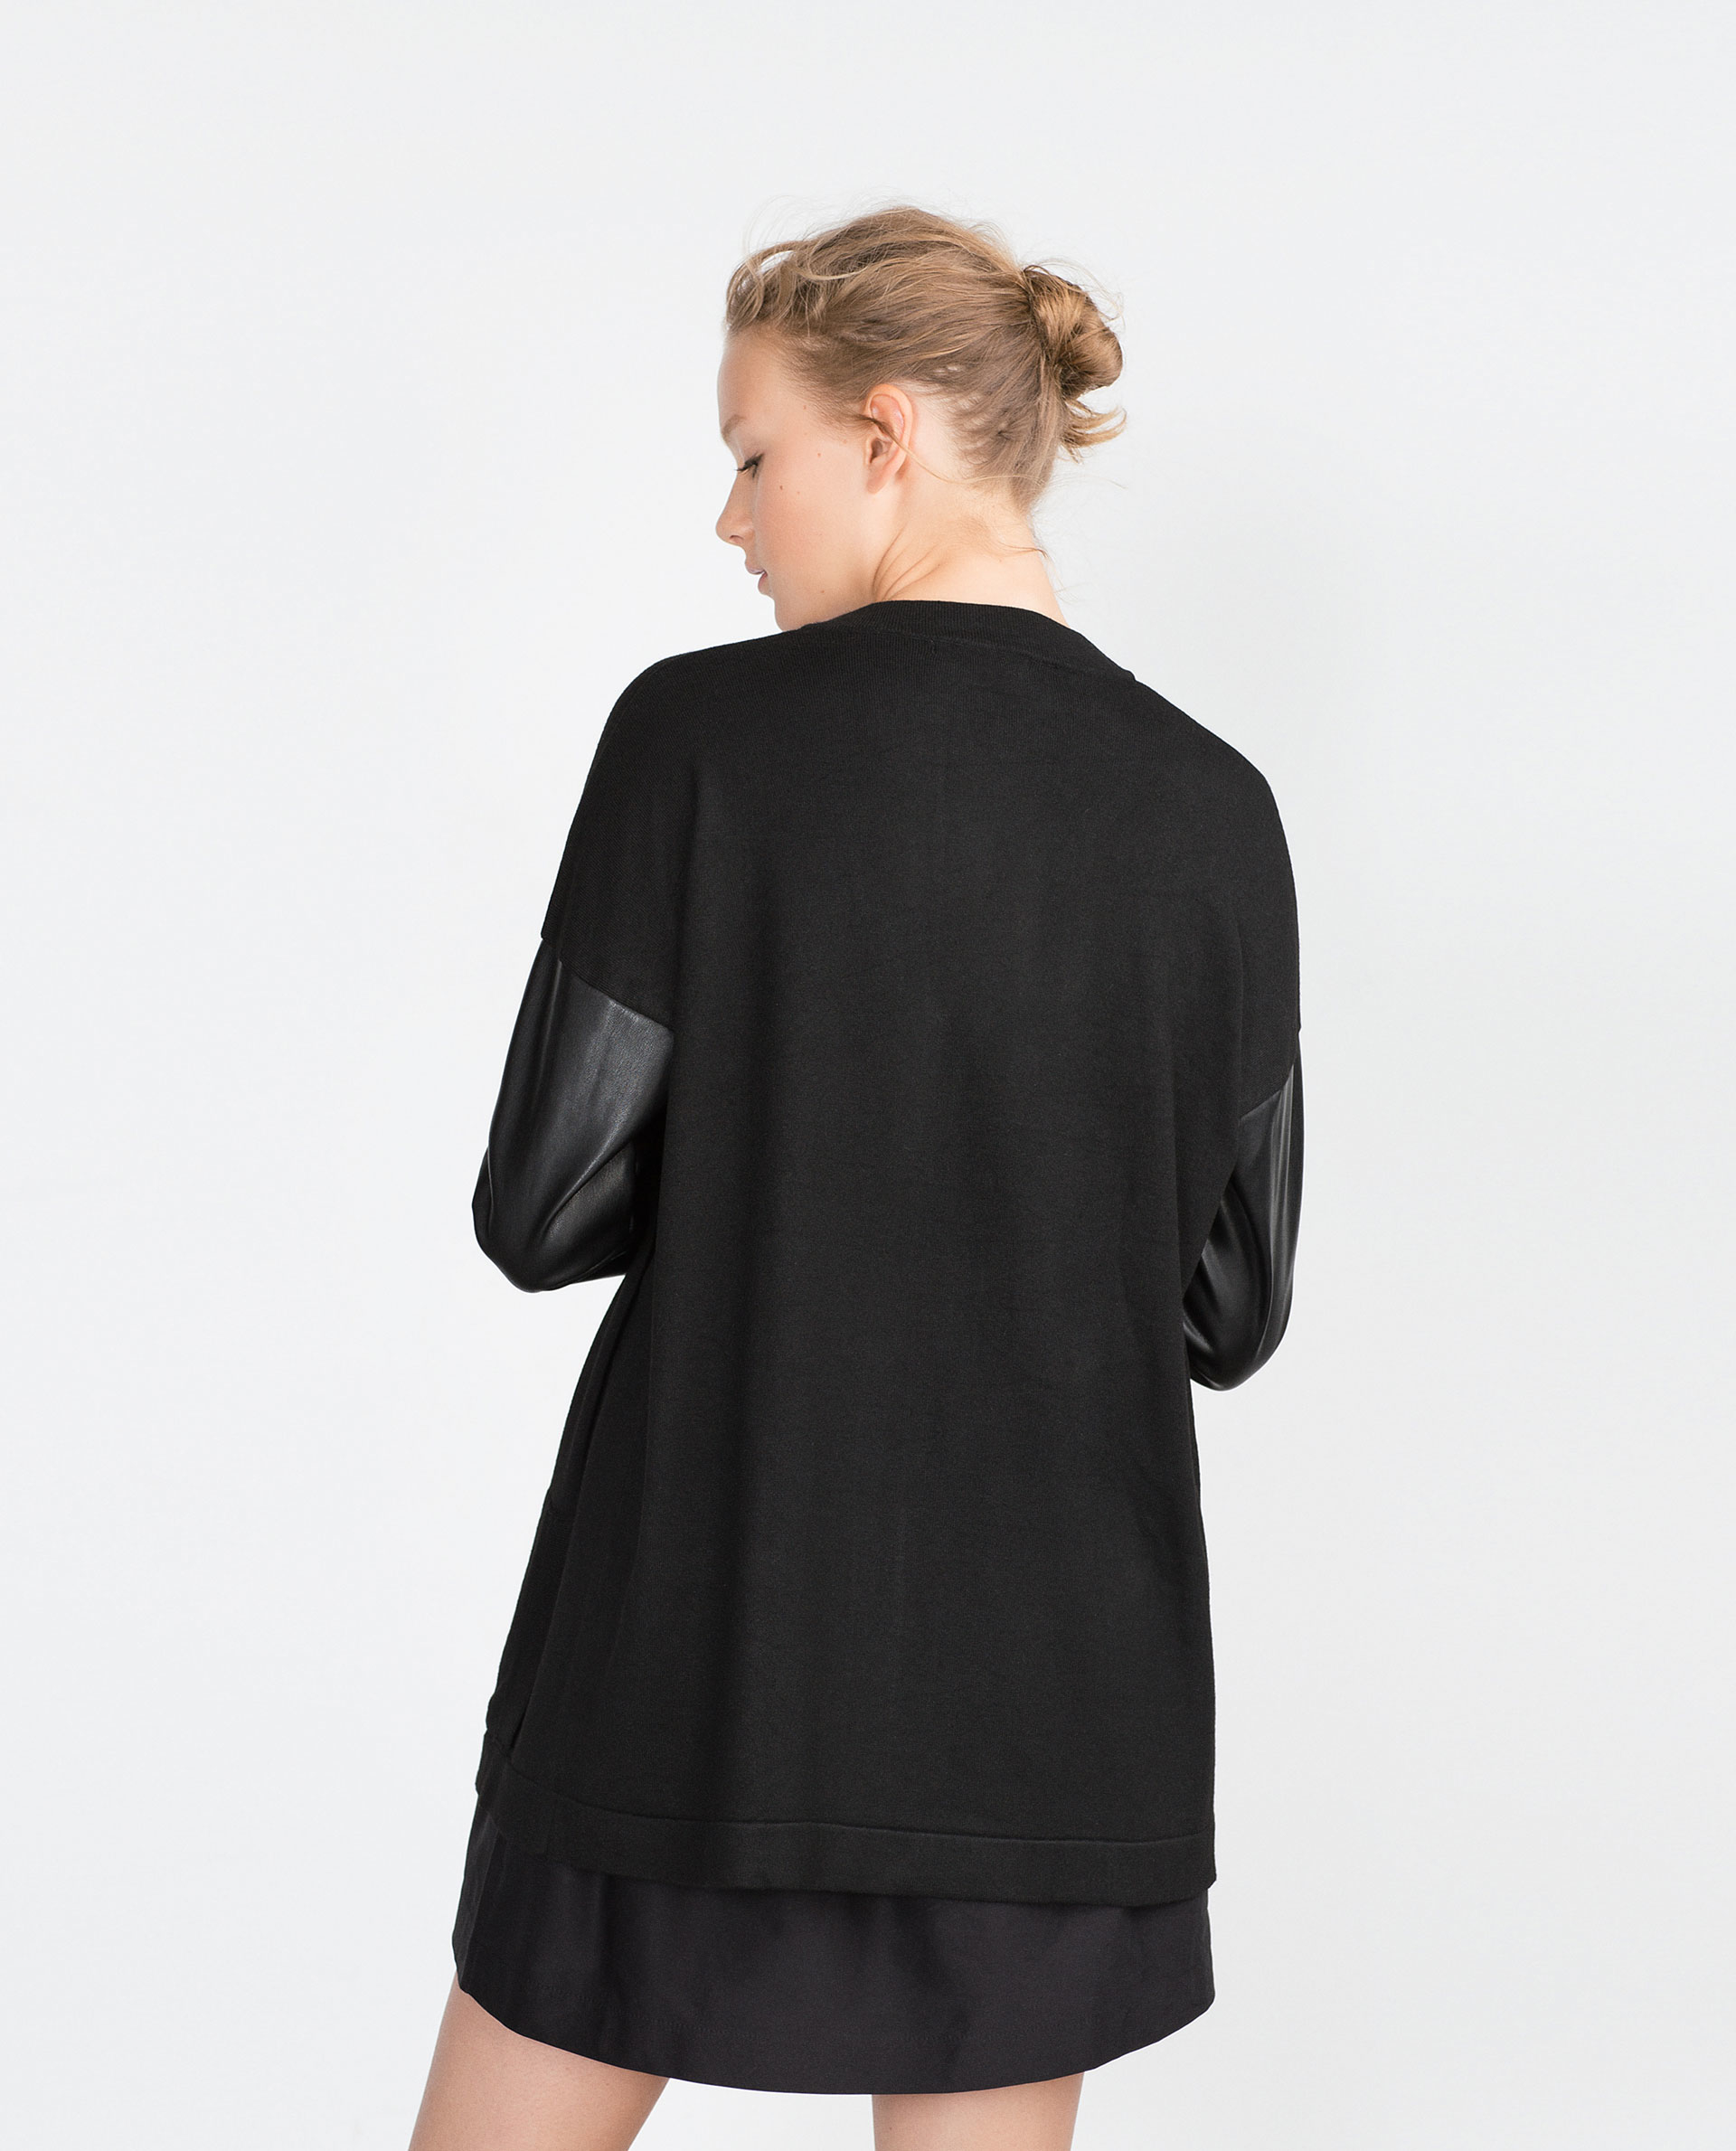 Not the type of blazer you'd wear to a 9 to 5; more like 5 to whenever! The black ponte body has a tailored look, with seaming detailed onto the draped front. The black faux leather sleeves lend an after-midnight vibe, with a sleek and smooth look.